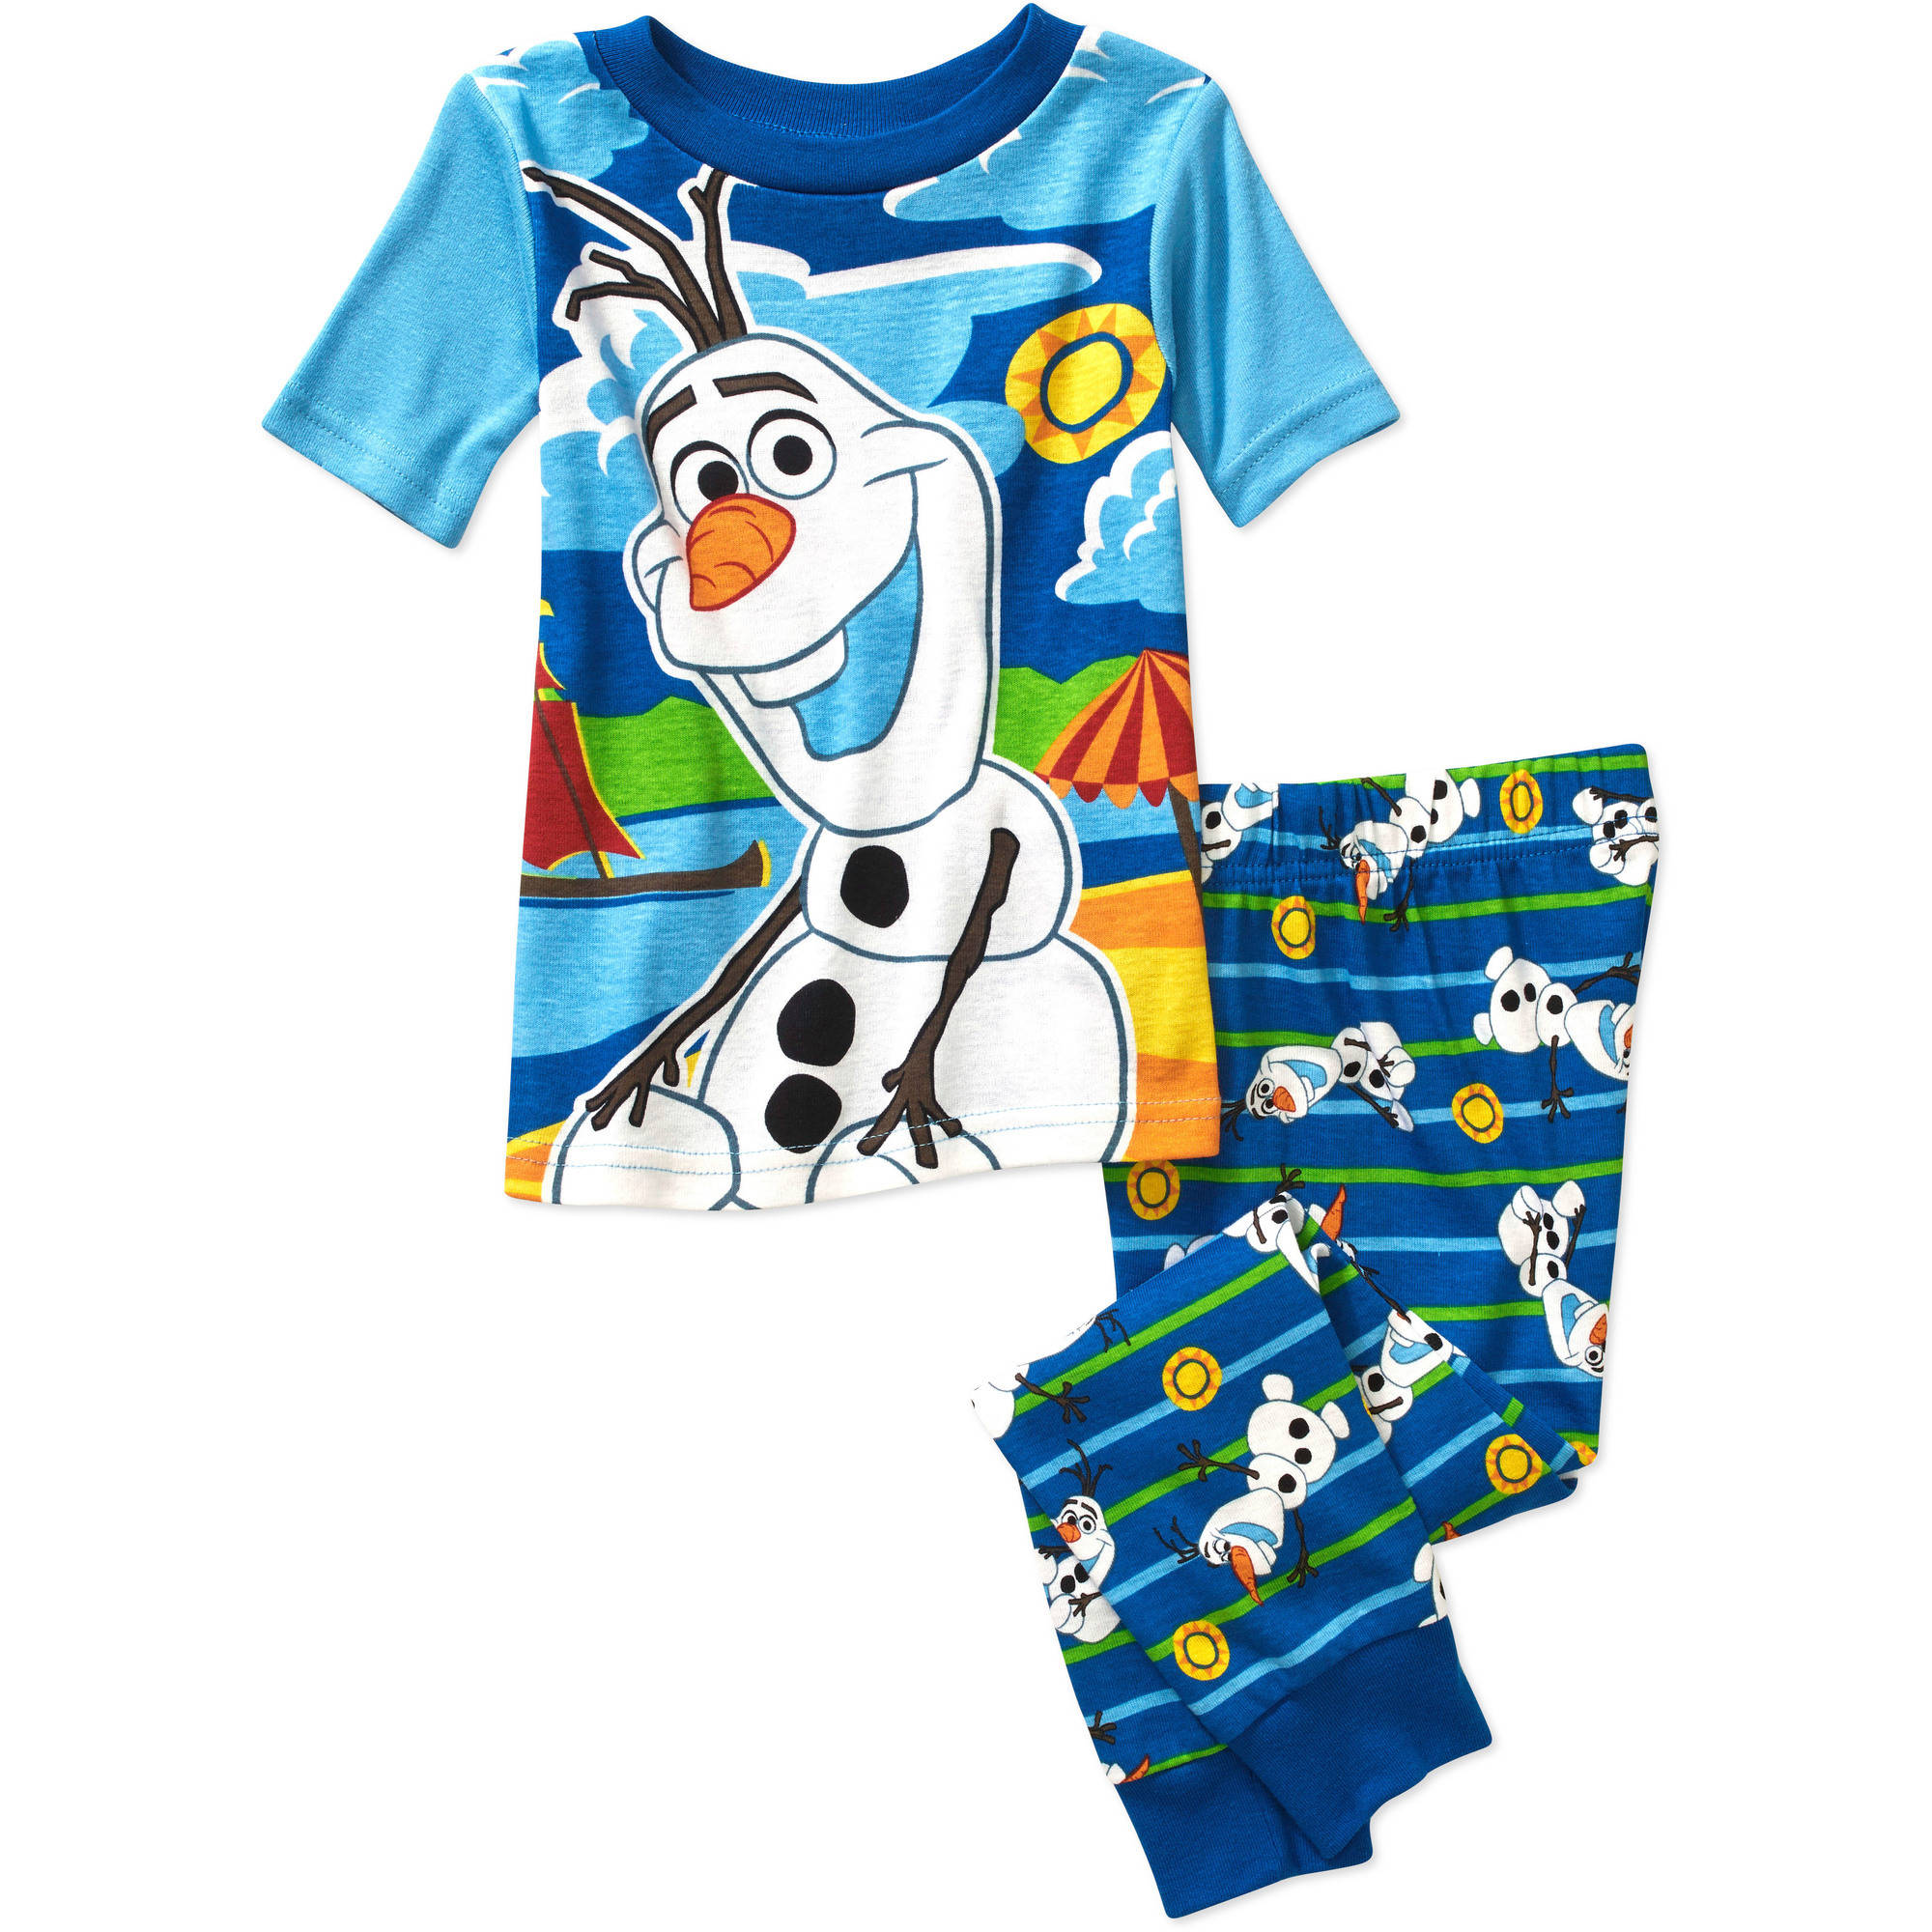 Disney Frozen Olaf Baby Toddler Boy Short Sleeve Cotton Tight Fit Sleepwear Set